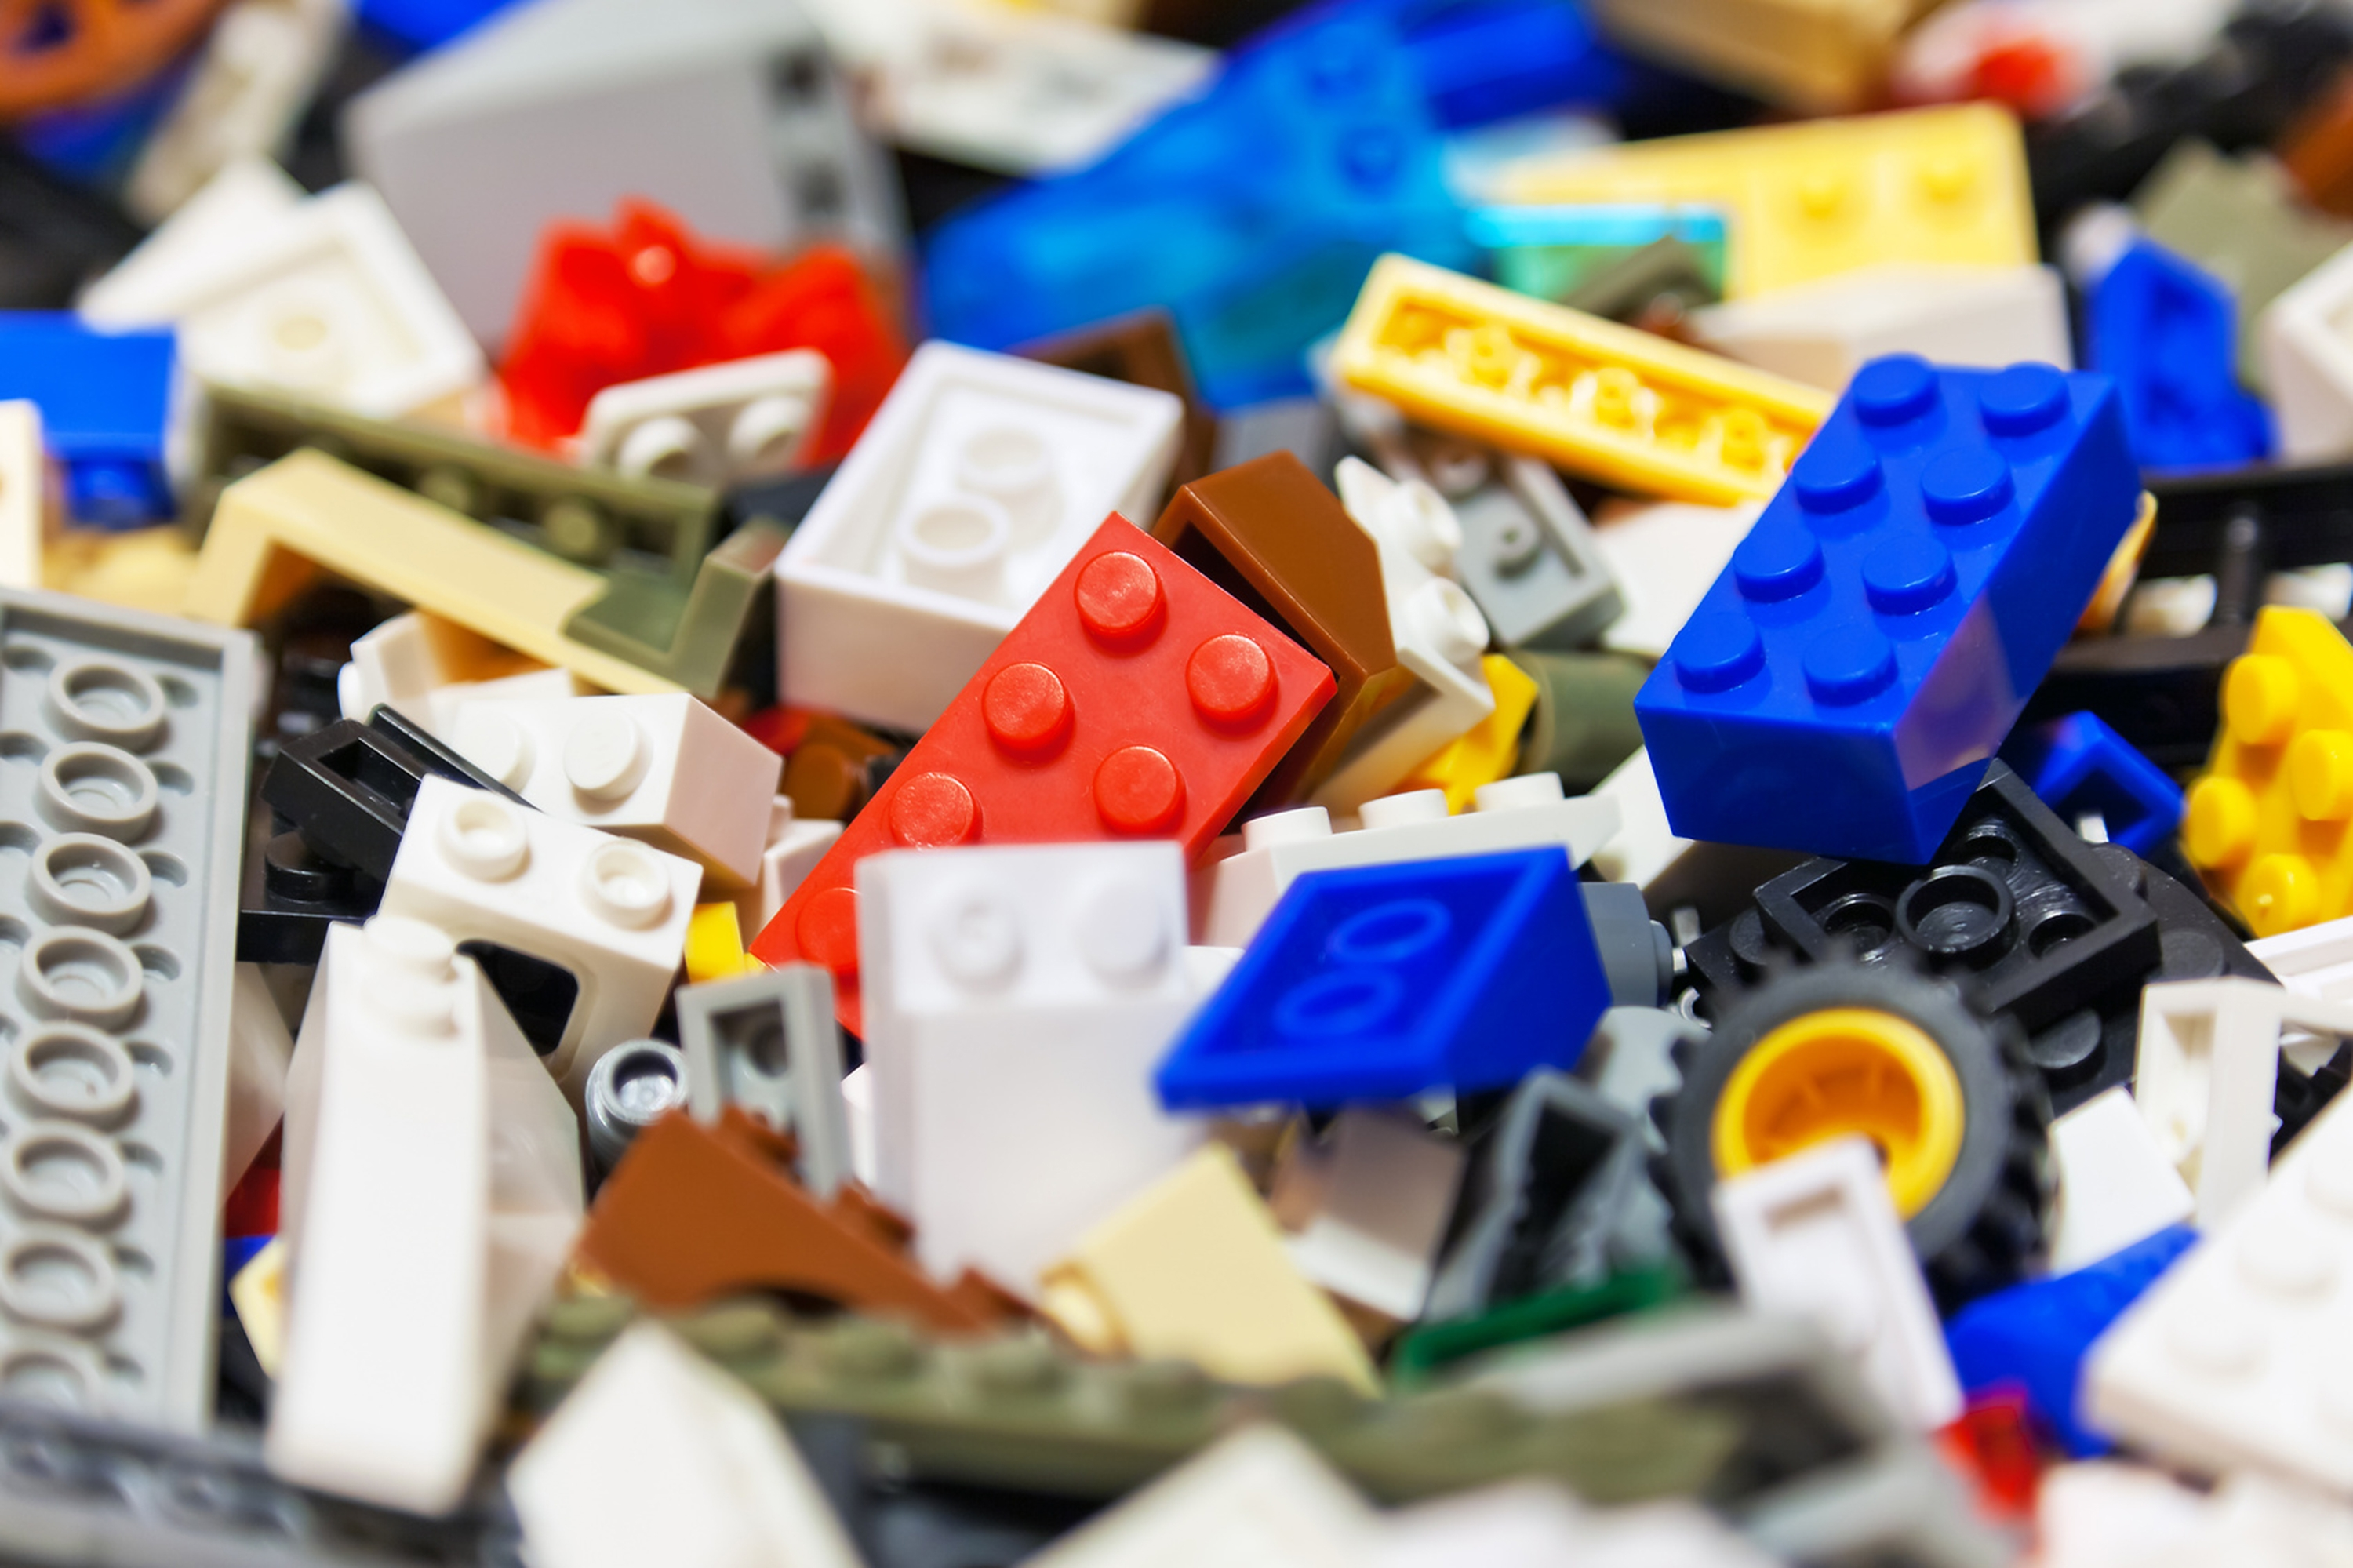 Washing your kids' Legos is one tip for keeping things cleaner around the house. Here's how: Put the pieces in a mesh laundry bag, zip it closed and toss into the washing machine full of hot water and a bit of soap. When the cycle is over, let the Legos dry on a towel. (Photo courtesy Fotolia/TNS)